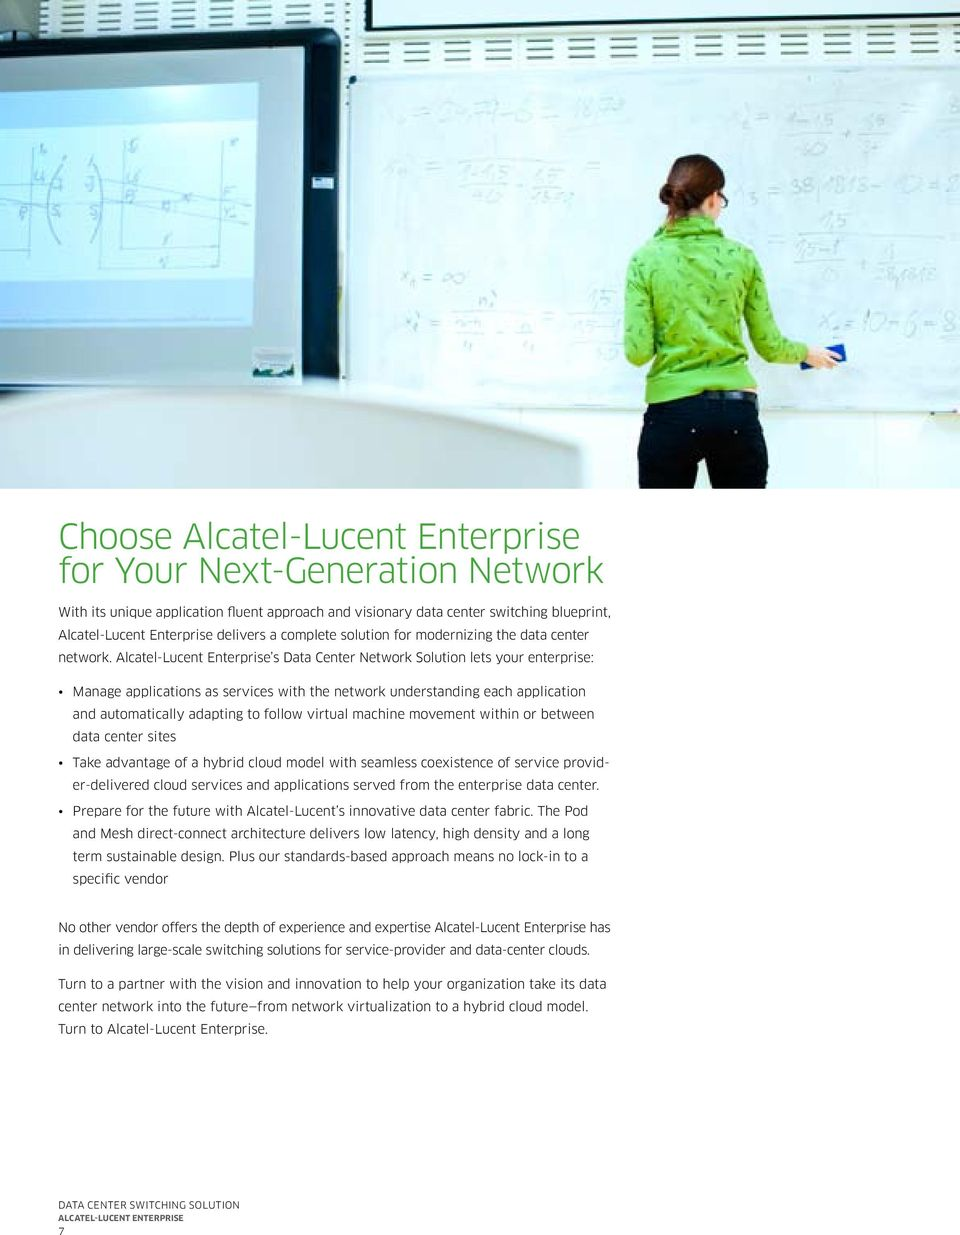 Alcatel-Lucent Enterprise s Data Center Network Solution lets your enterprise: Manage applications as services with the network understanding each application and automatically adapting to follow